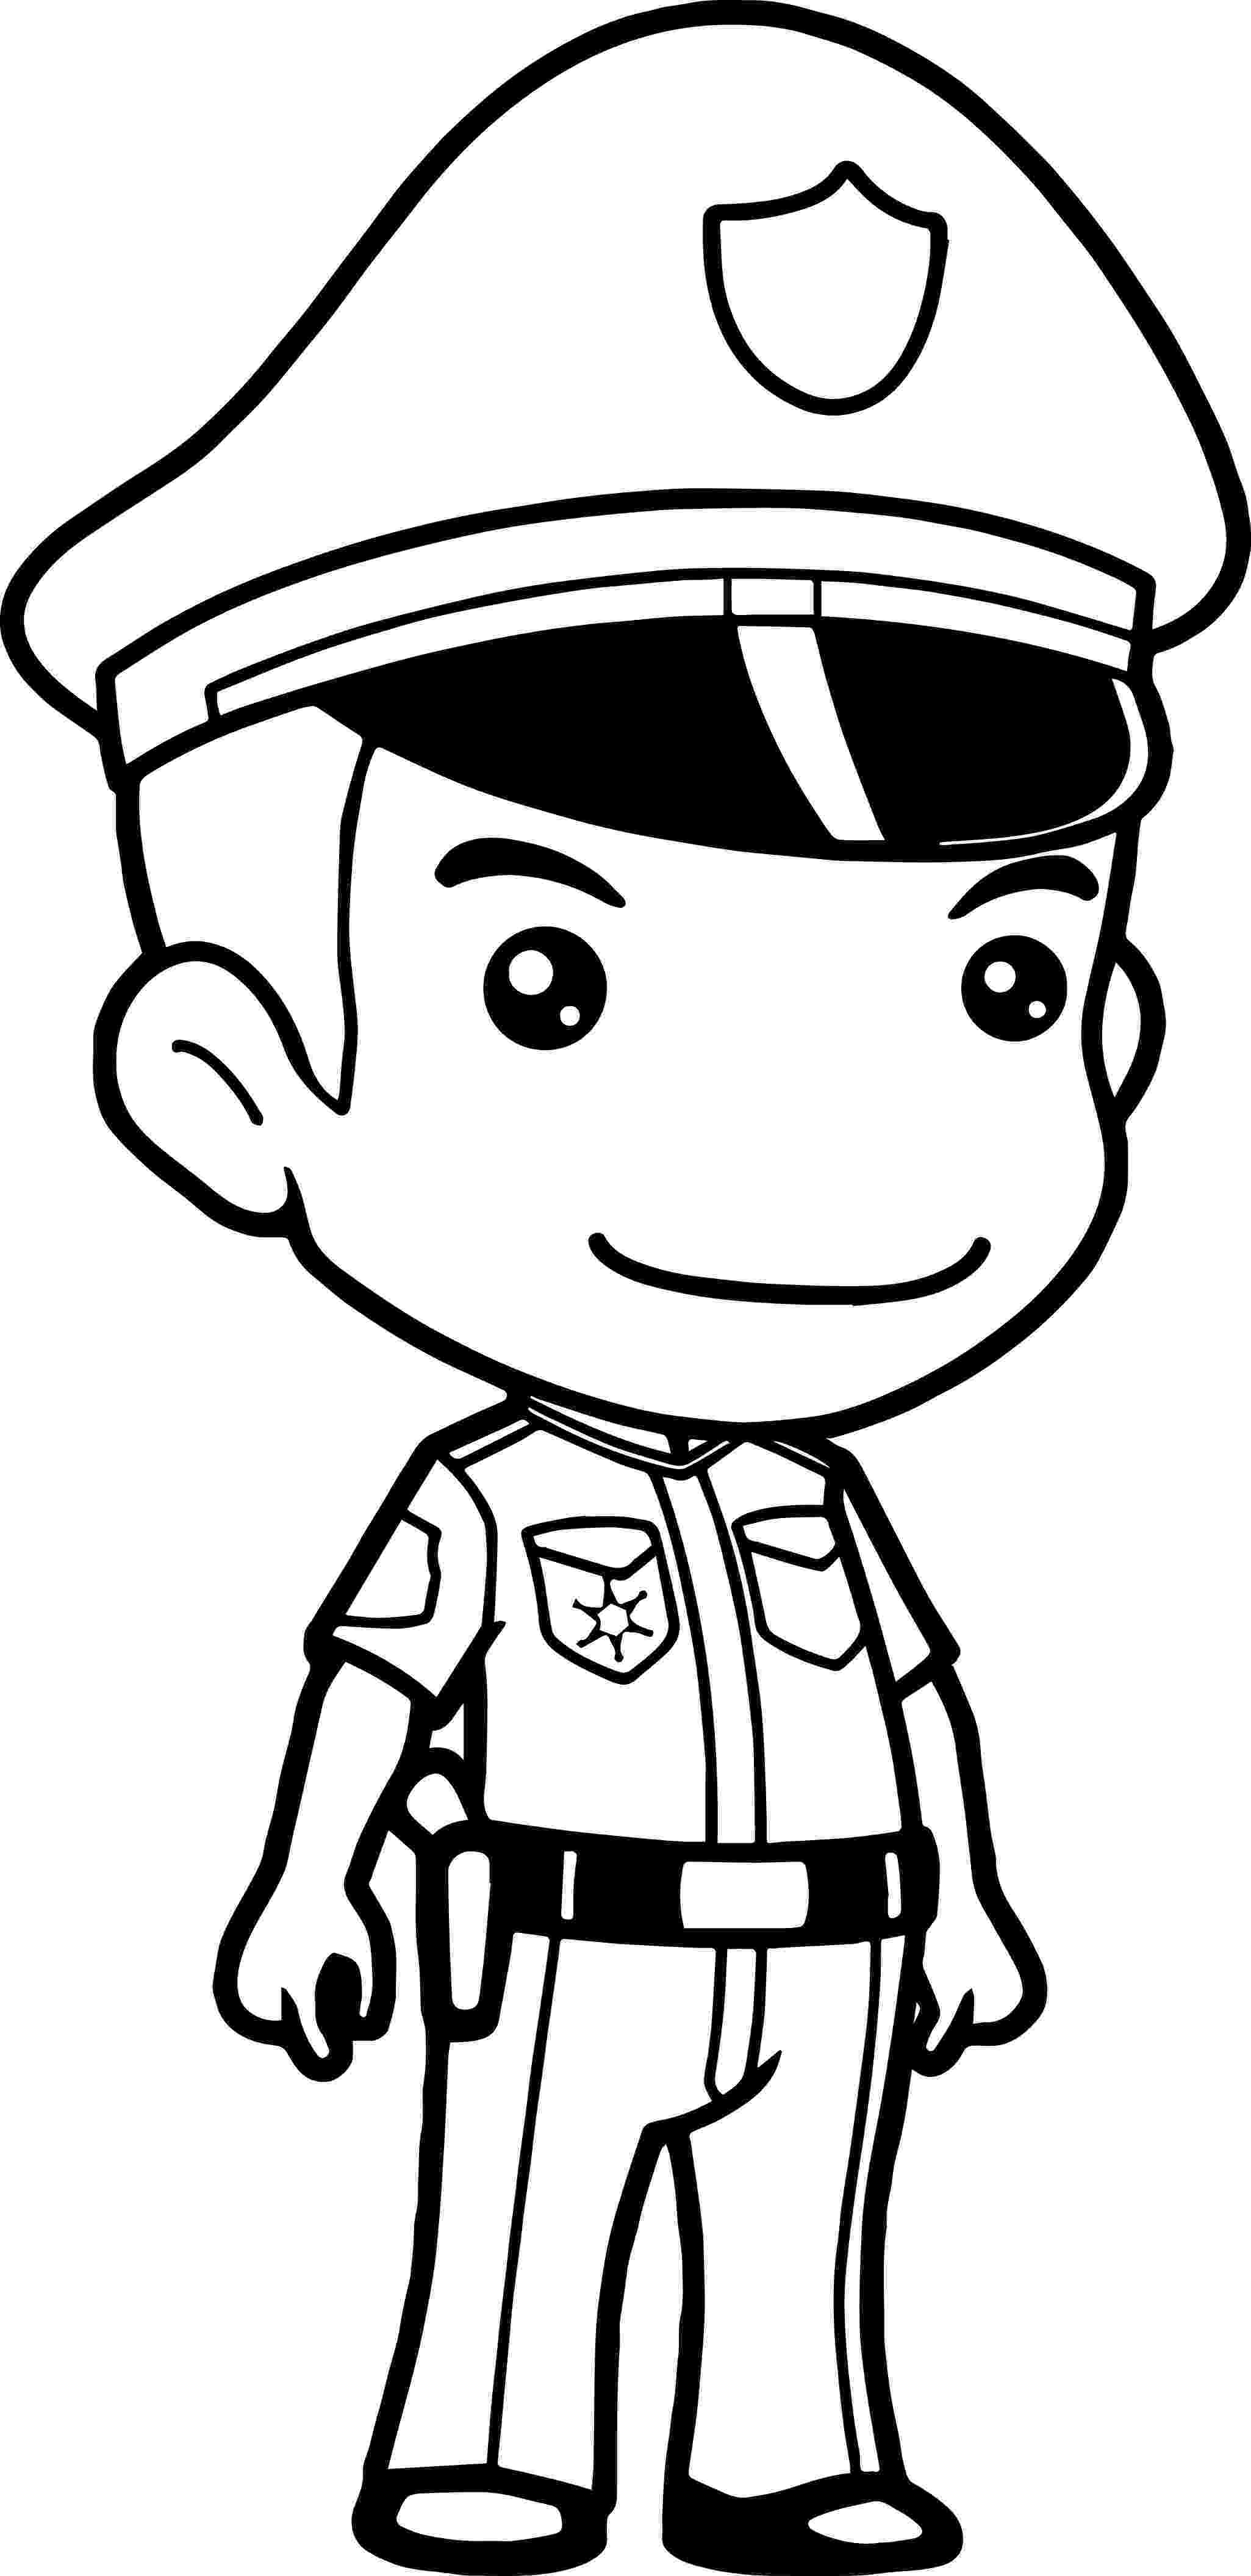 coloring police officer free printable policeman coloring pages for kids police officer coloring